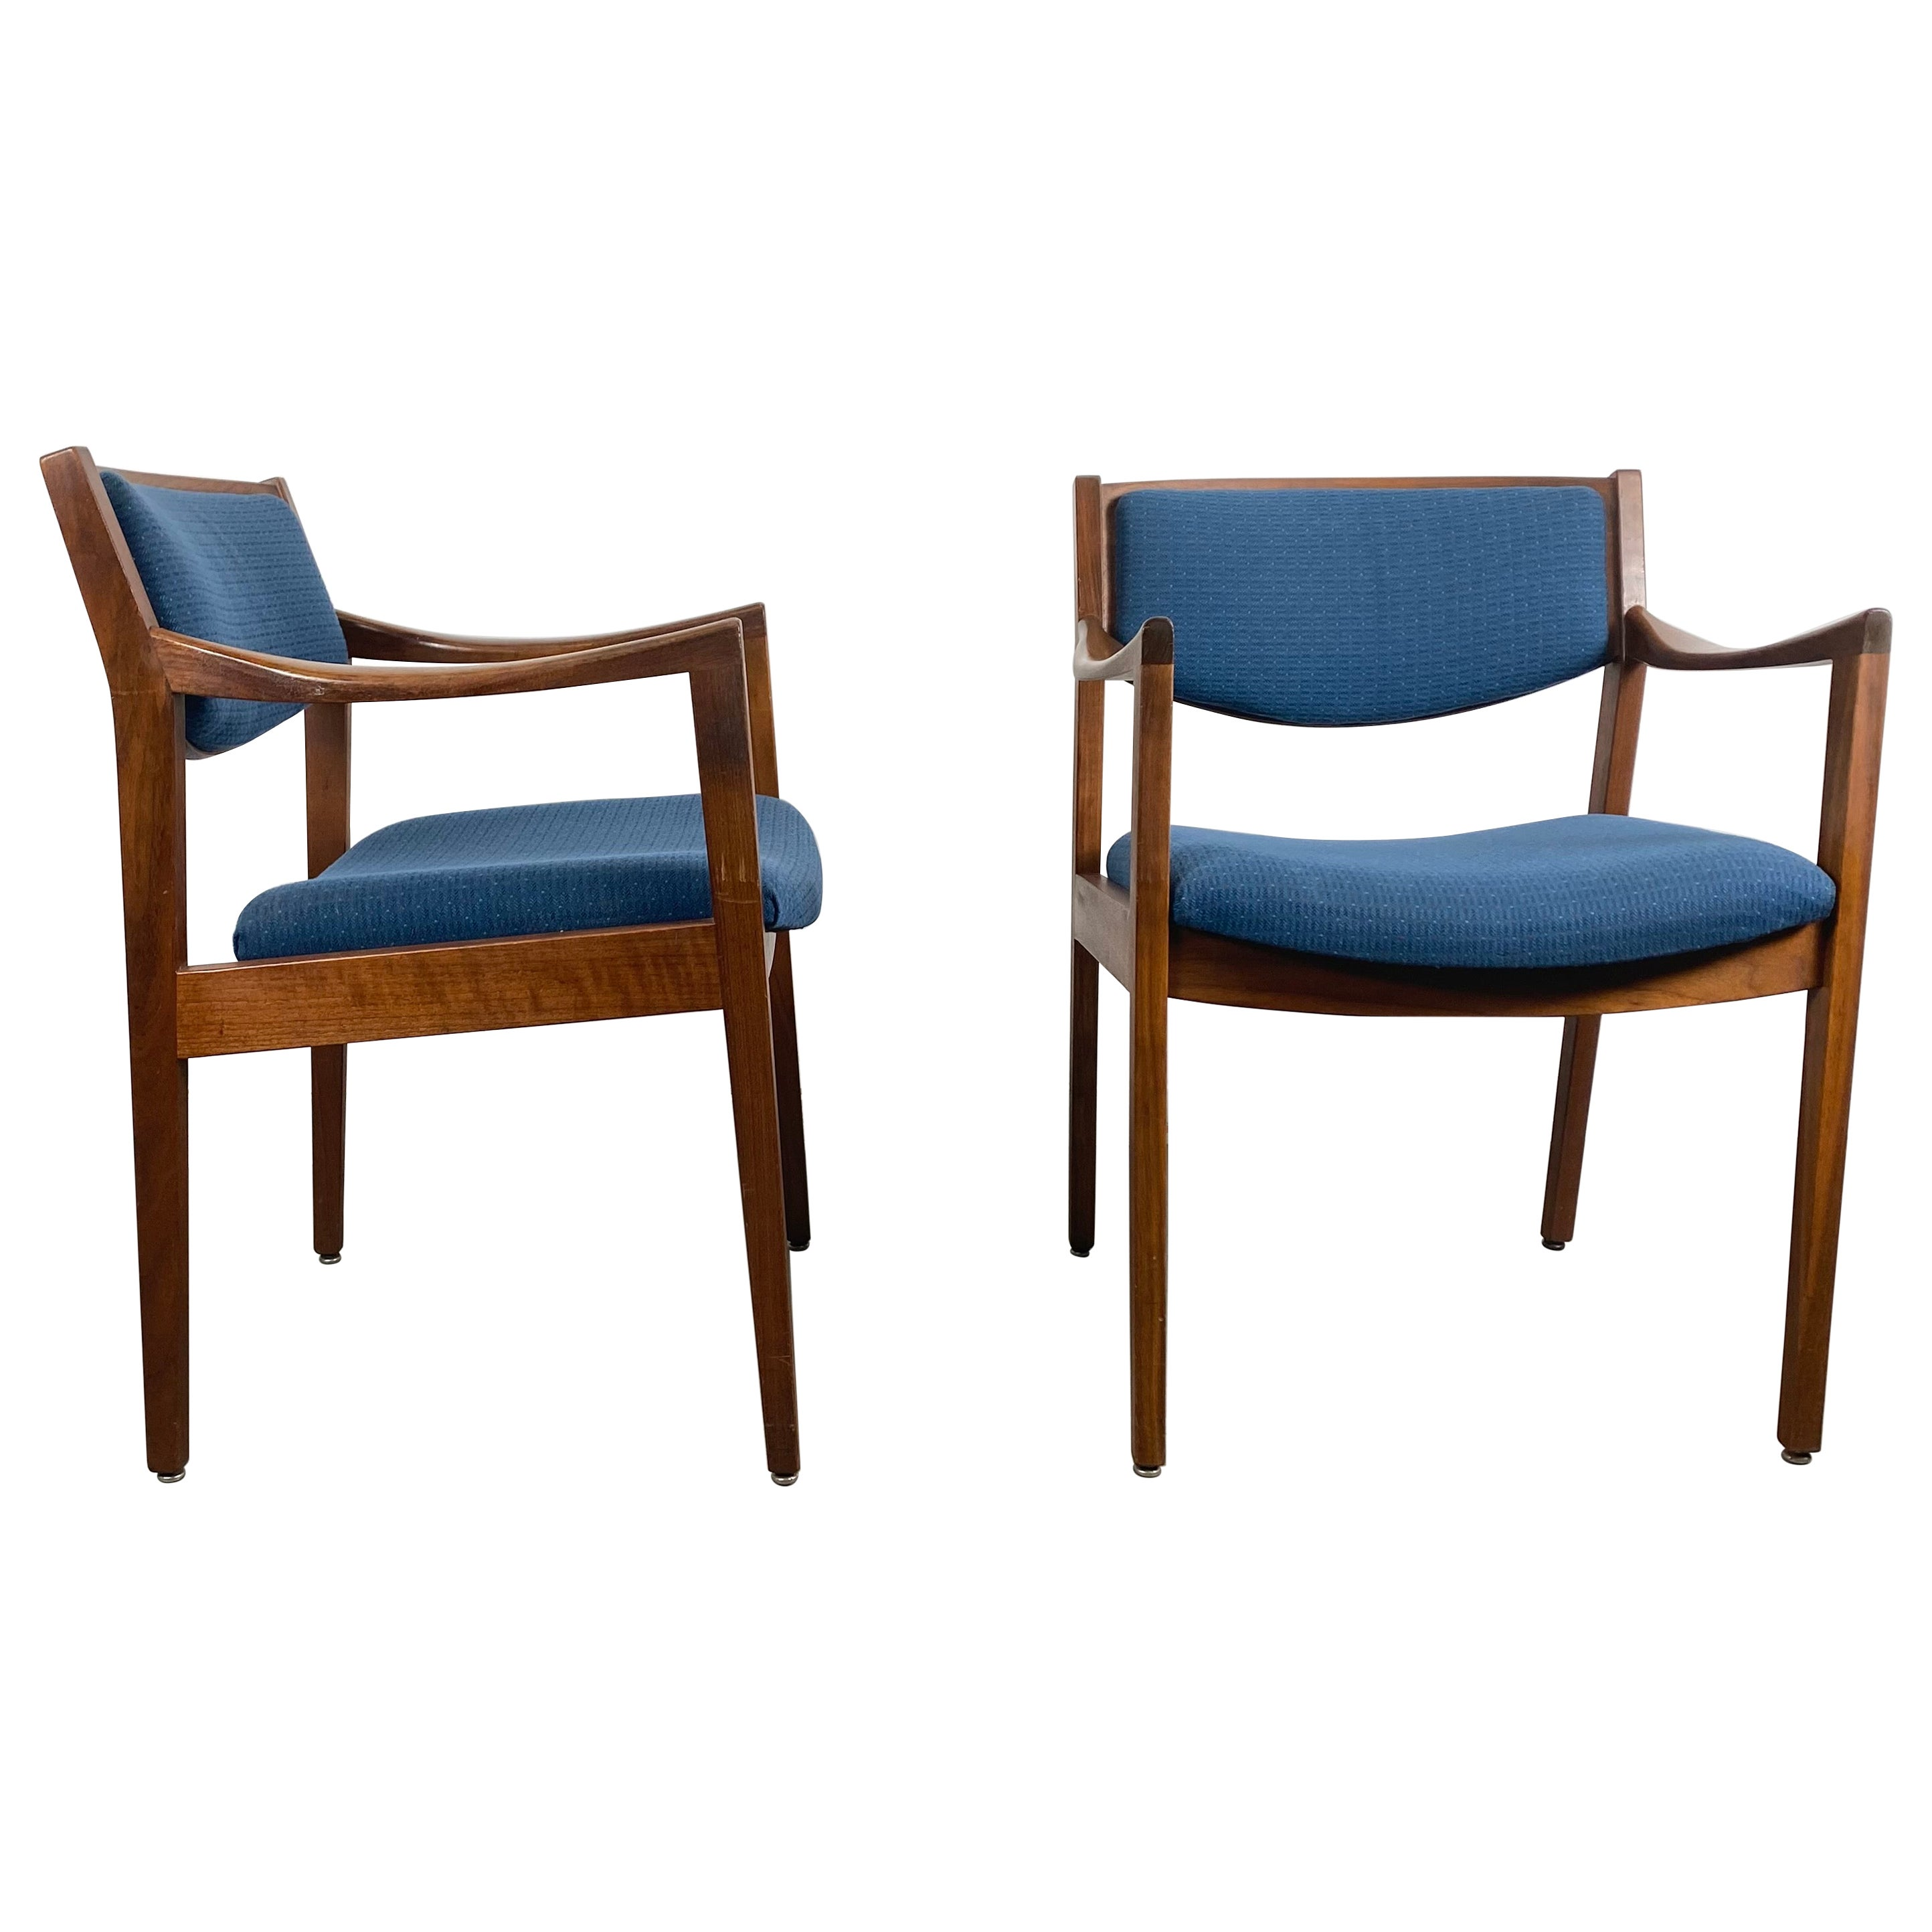 Gunlocke Modernist Walnut and Fabric Occasional Armchairs After Jens Risom, Pair